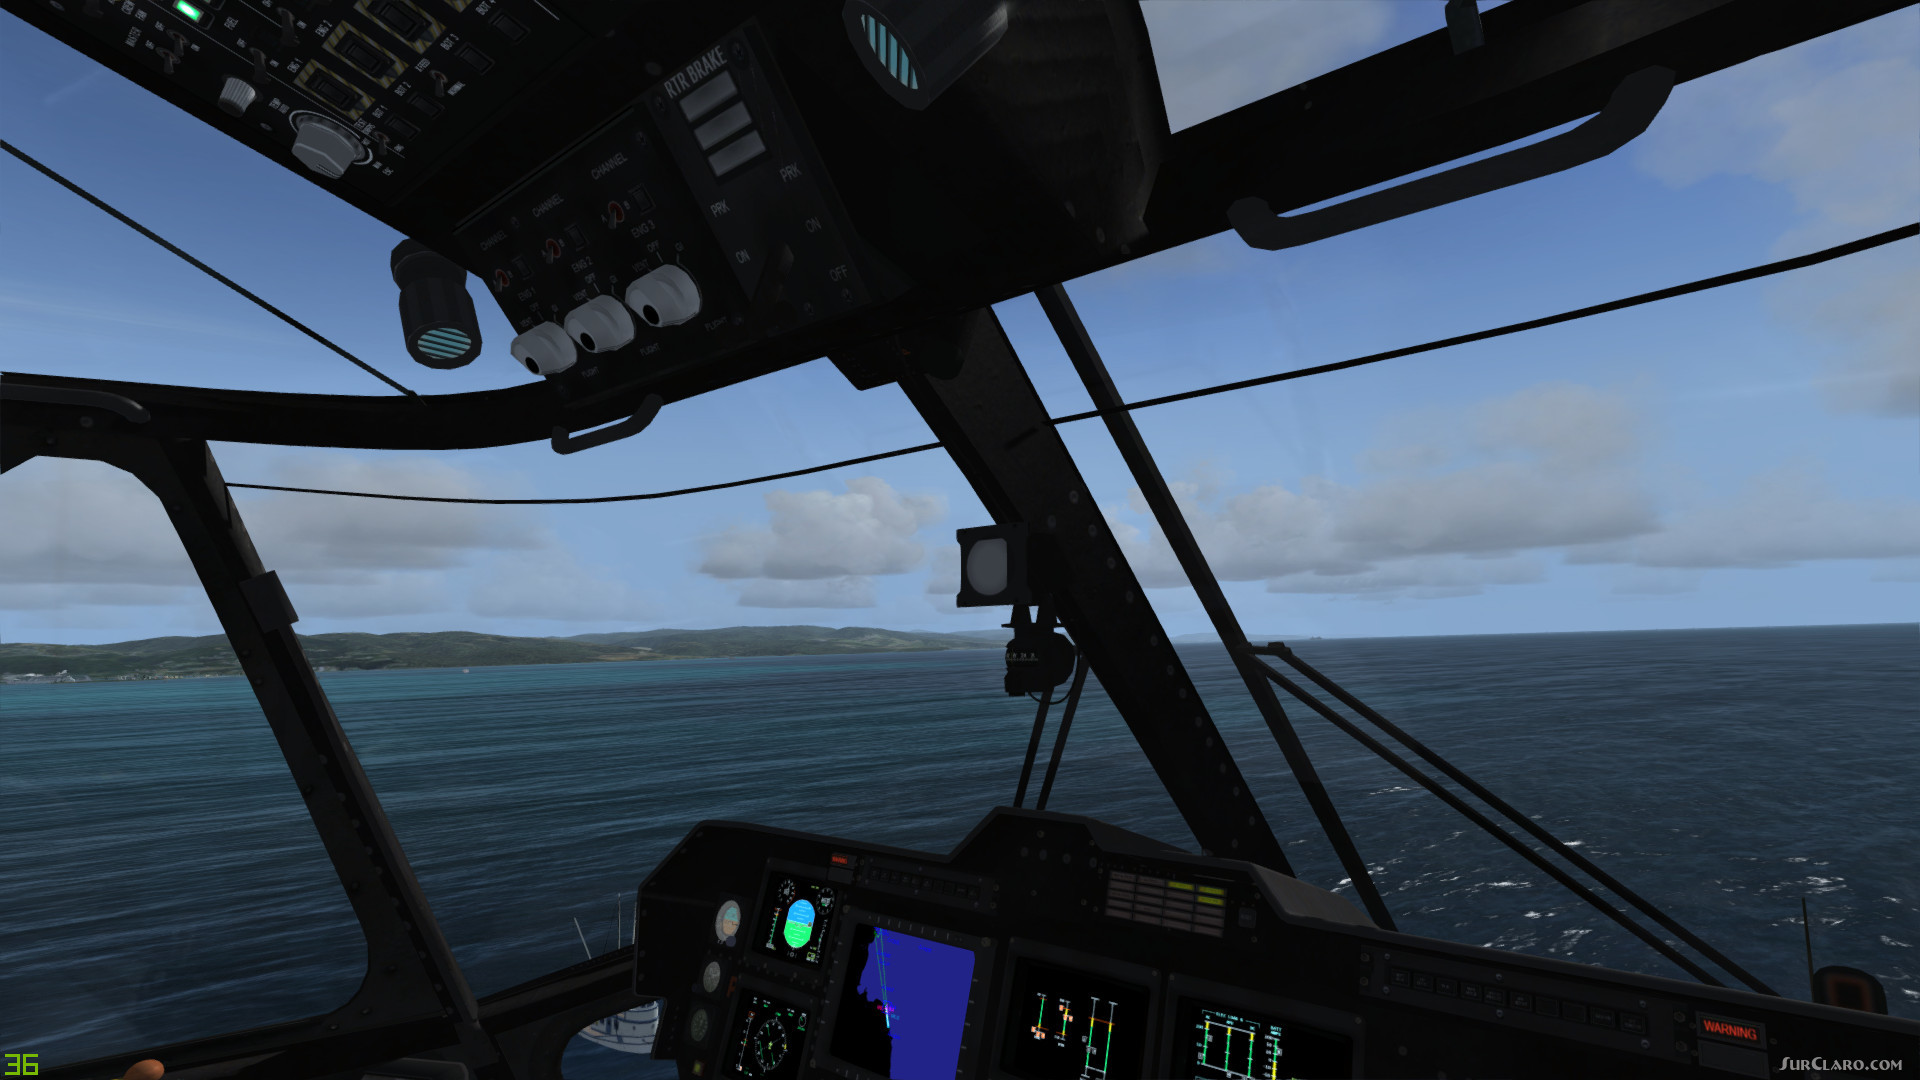 FSX P3D Sikorsky MH-53 Pavelow Helicopter